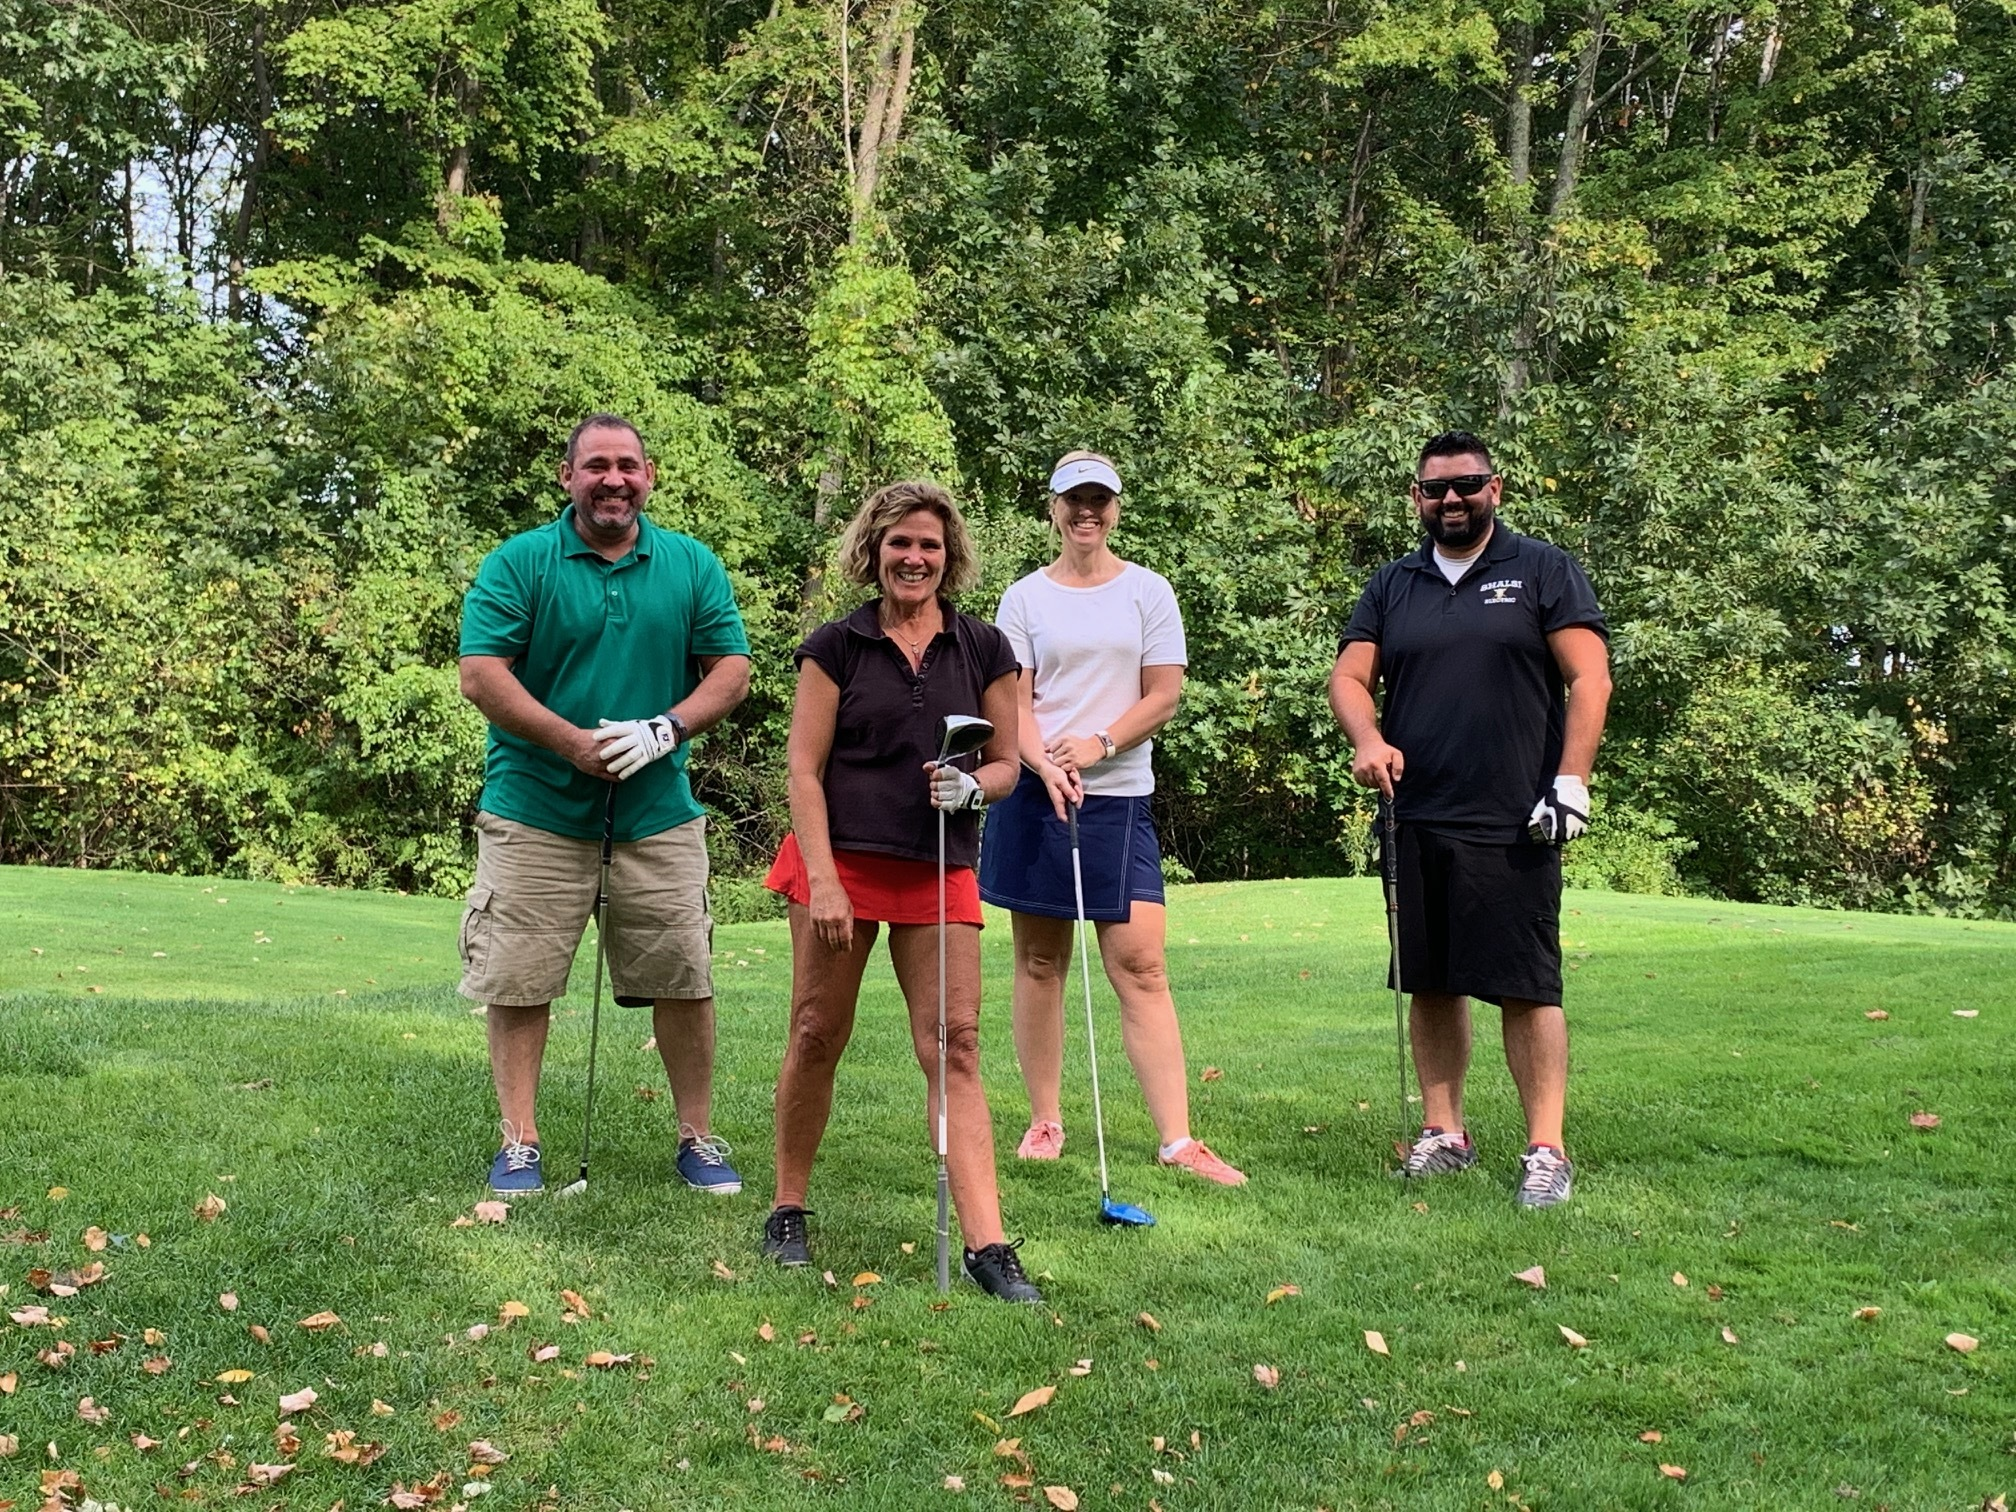 THE 28TH ANNUAL CATALDO SWING FORE HOPE GOLF TOURNAMENT gallery image #11